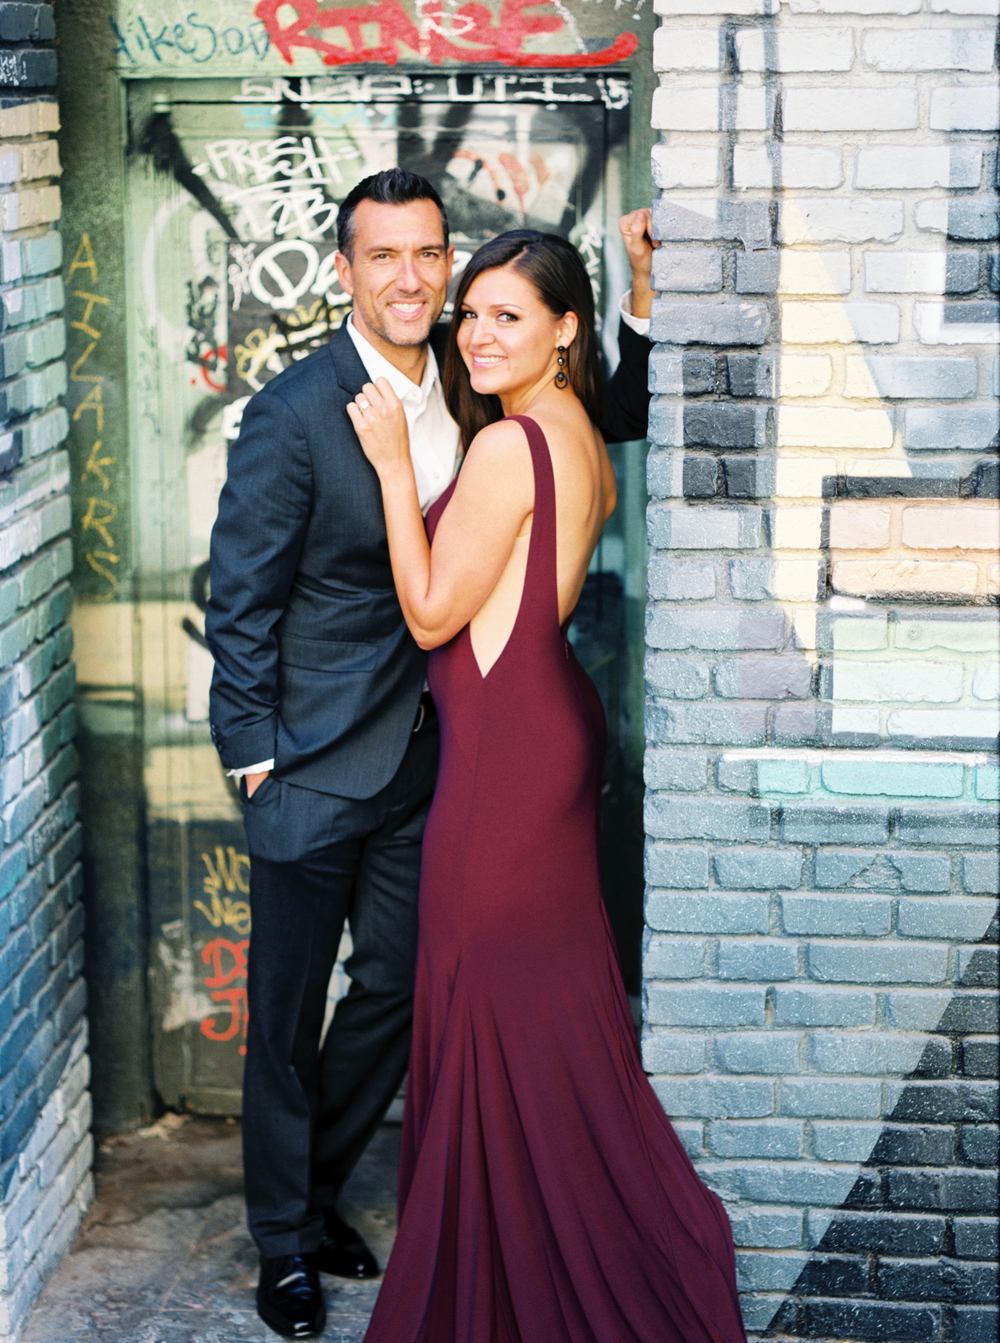 downtown_losangeles_engagement_photos_chantepaul-70.jpg